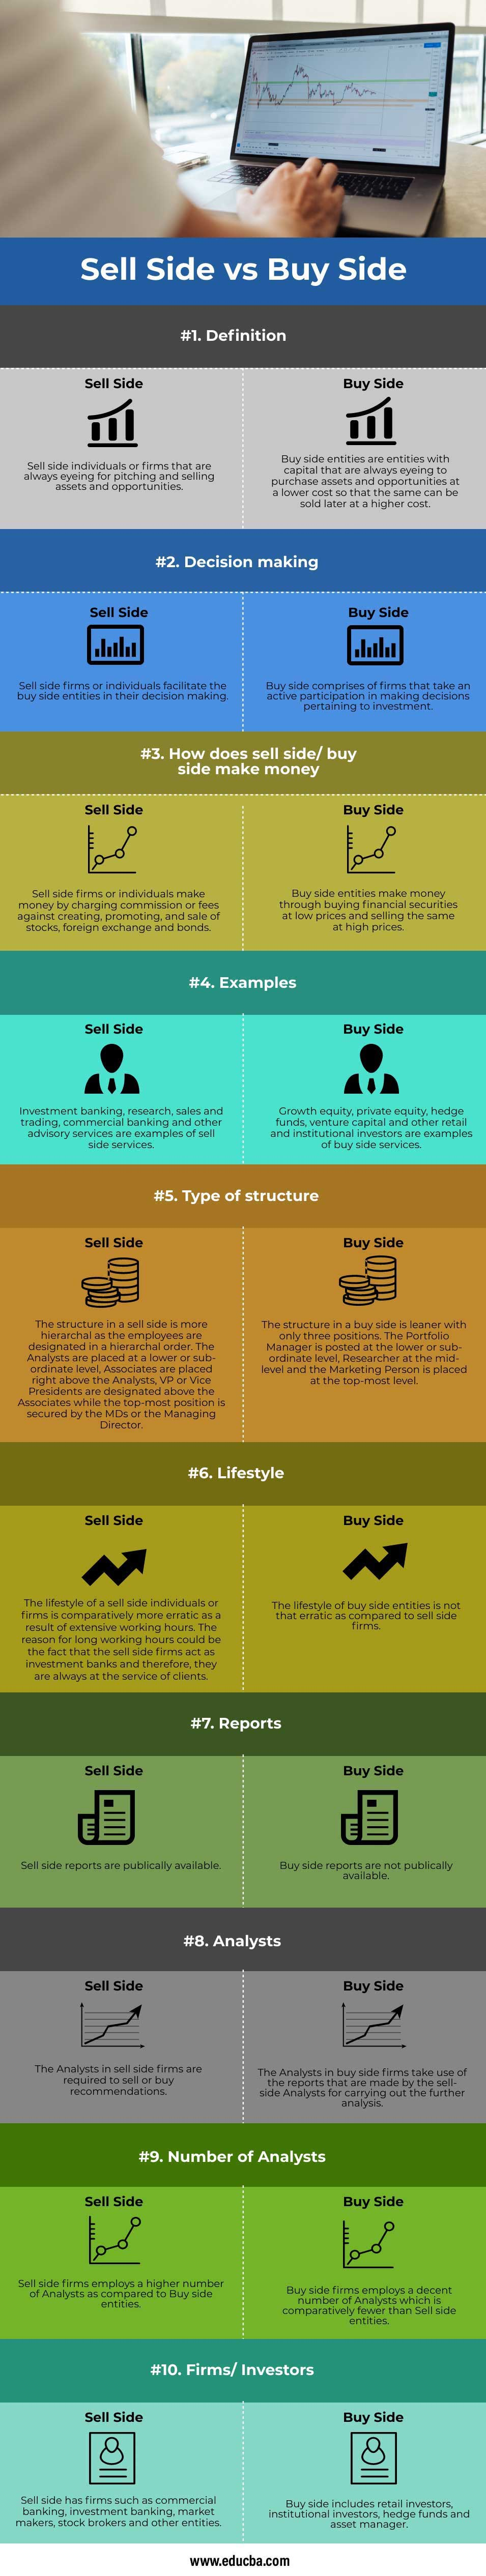 Sell-Side-vs-Buy-Side-info